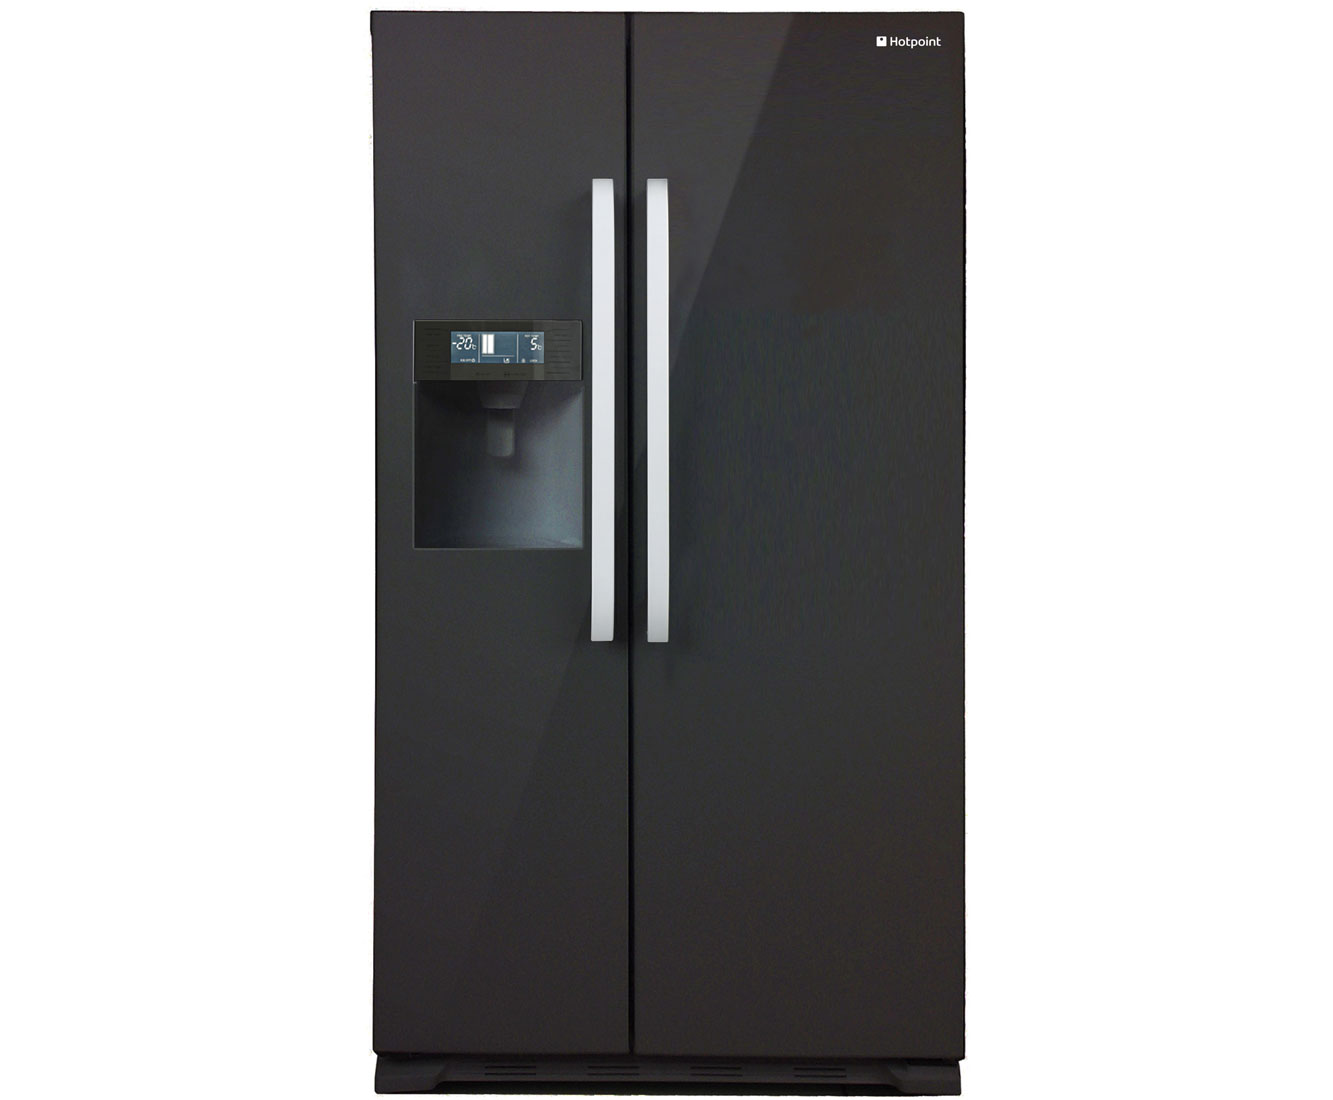 Hotpoint SXBD925FWD American Fridge Freezer - Black Gloss